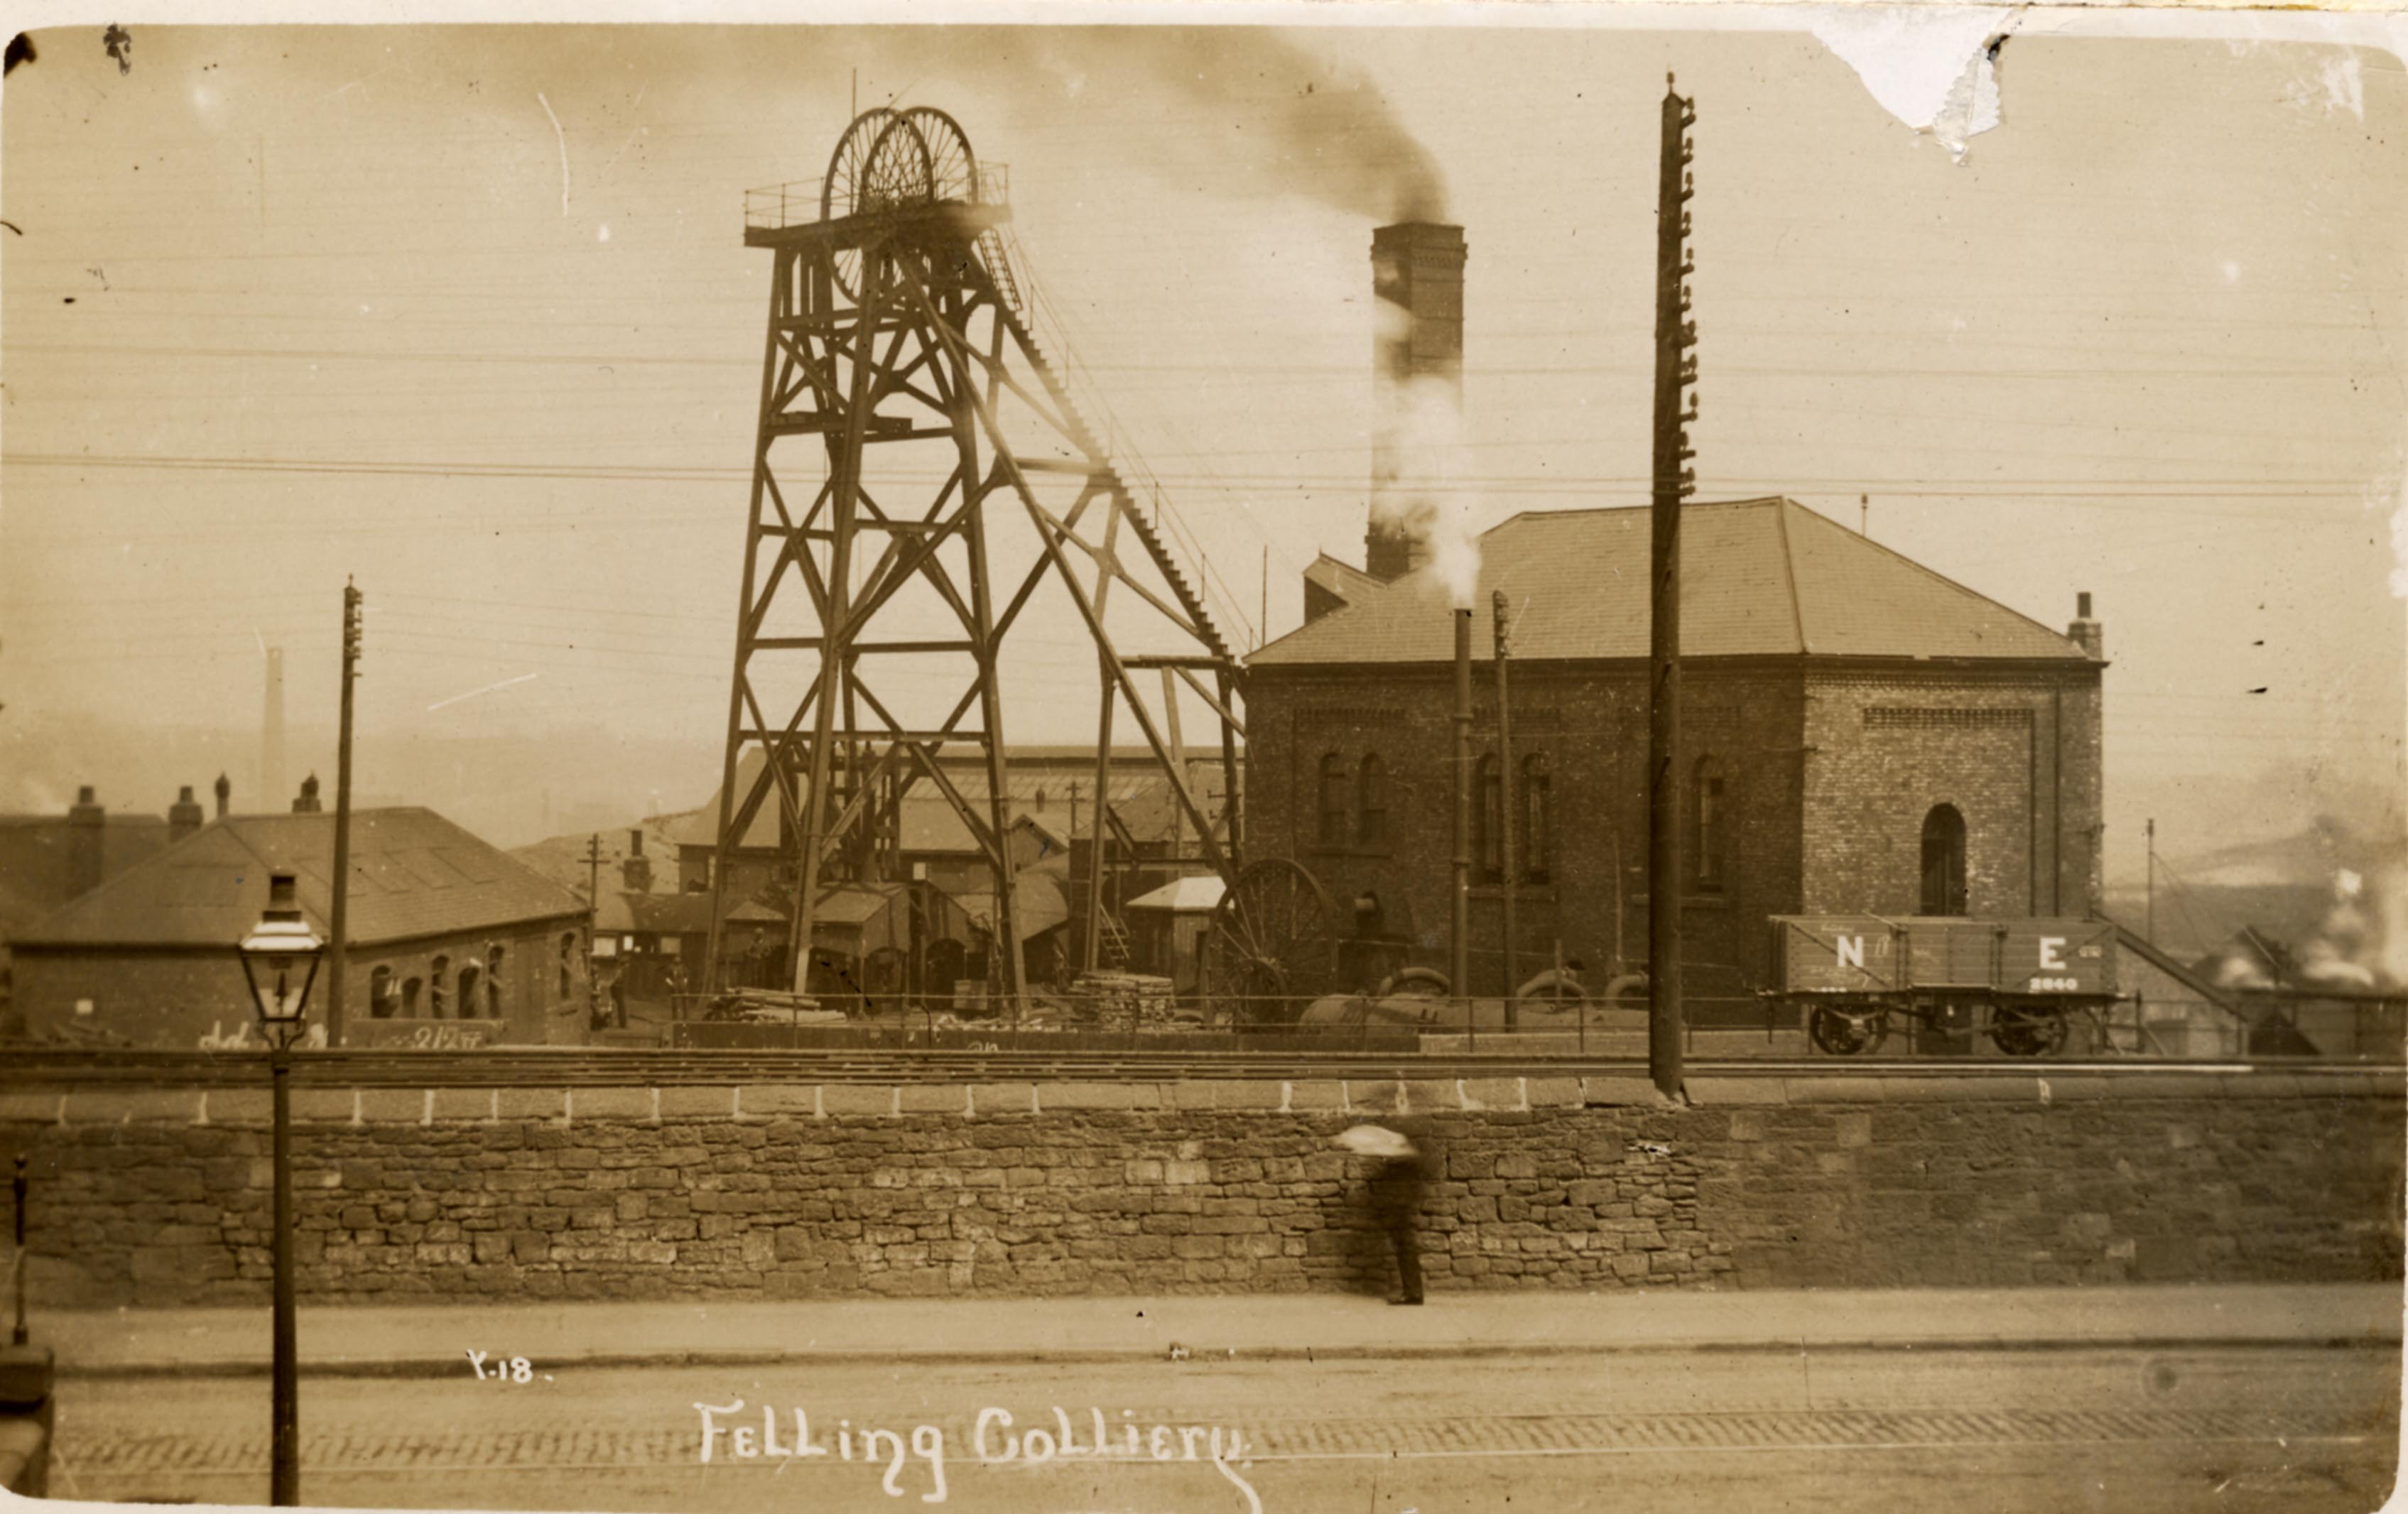 Felling Colliery  (1779 - 1931)